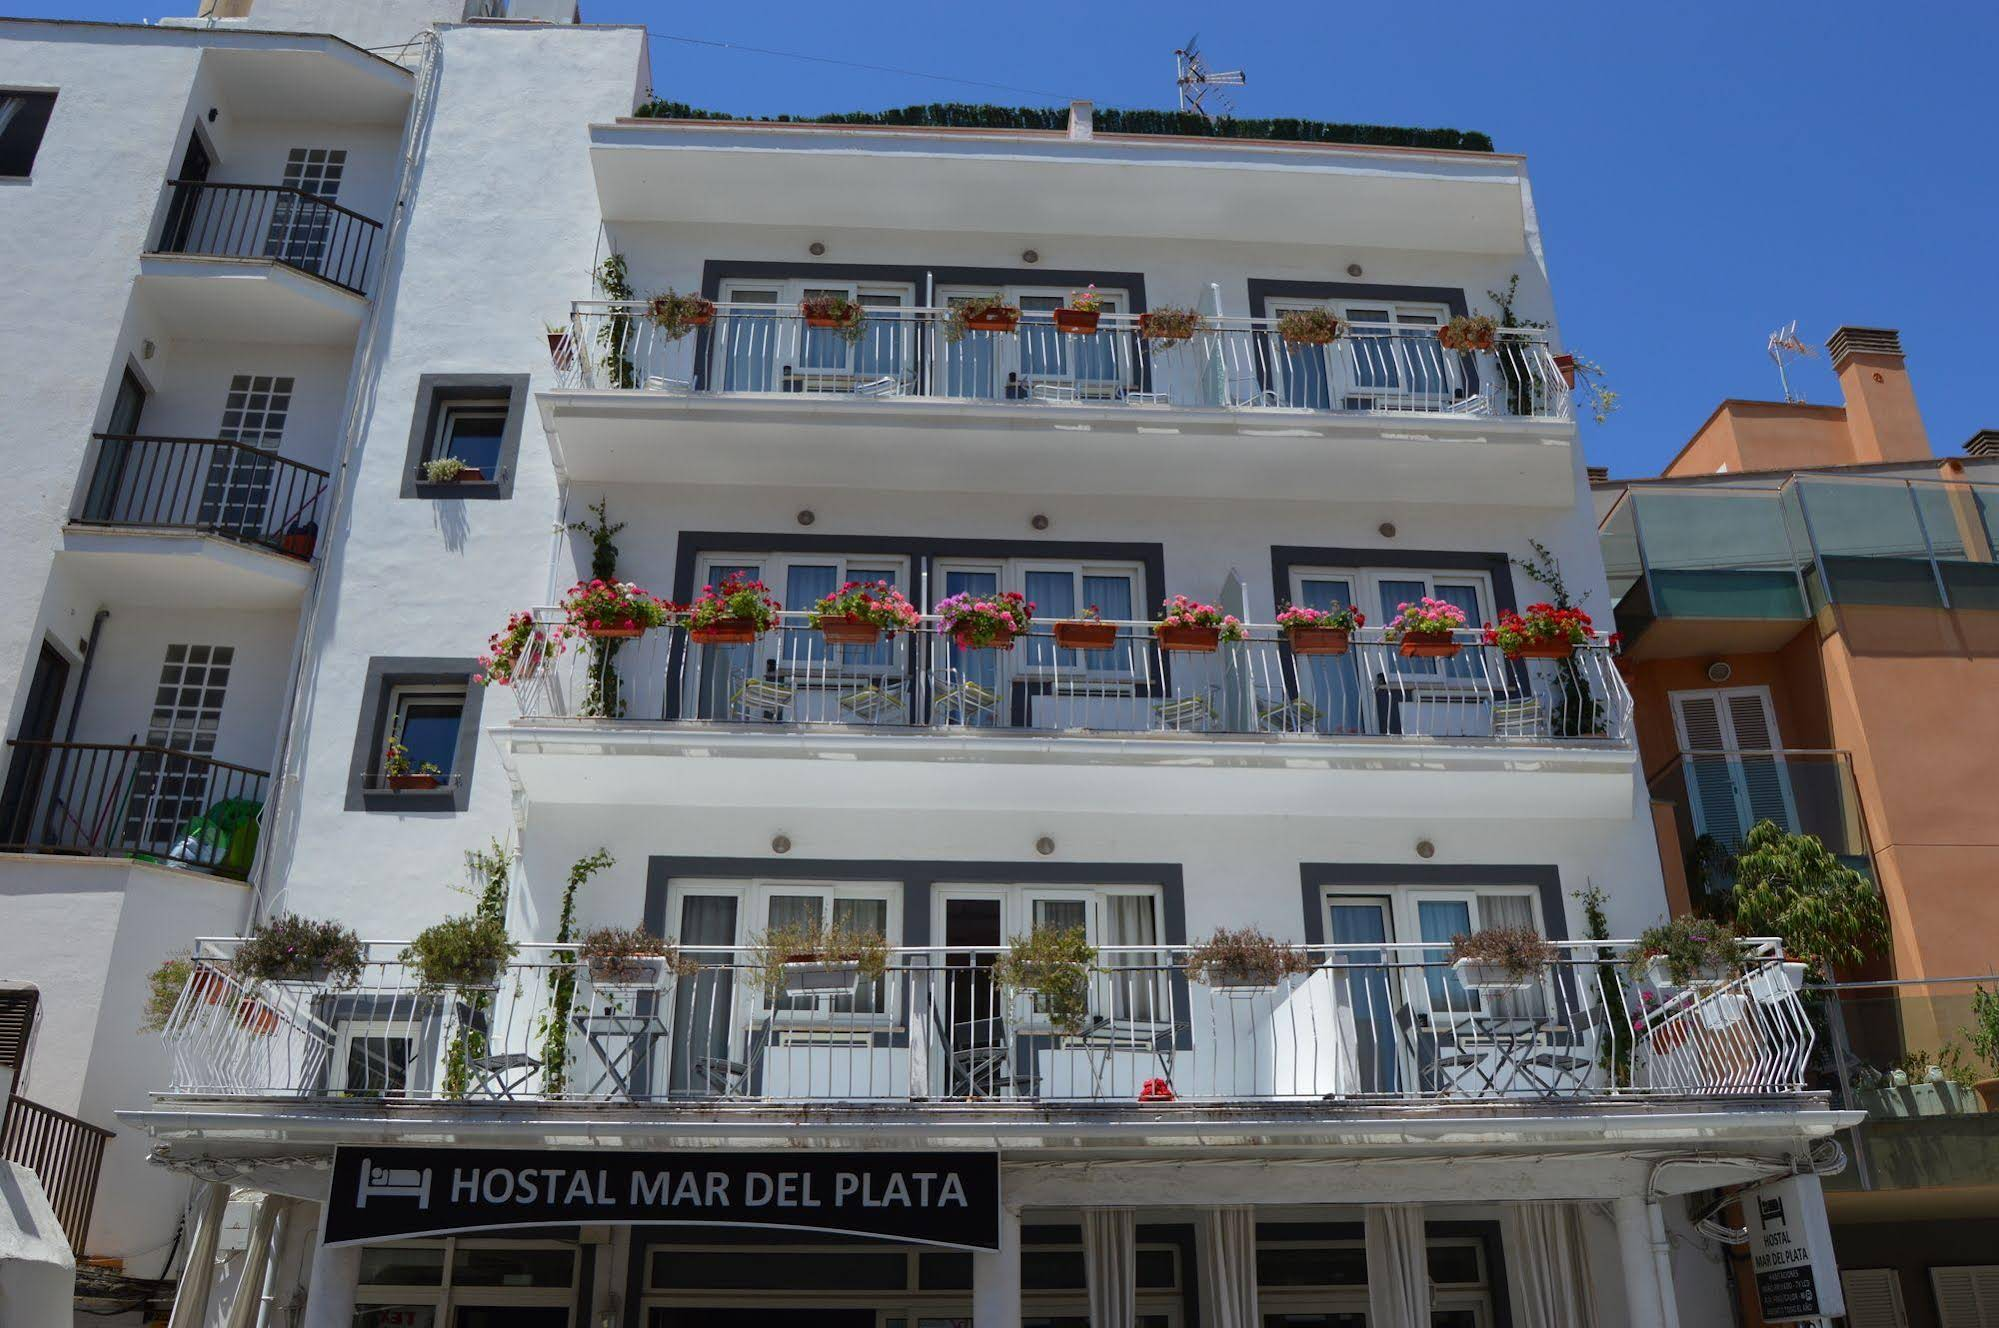 Hostal Mar del Plata - Playa De Palma